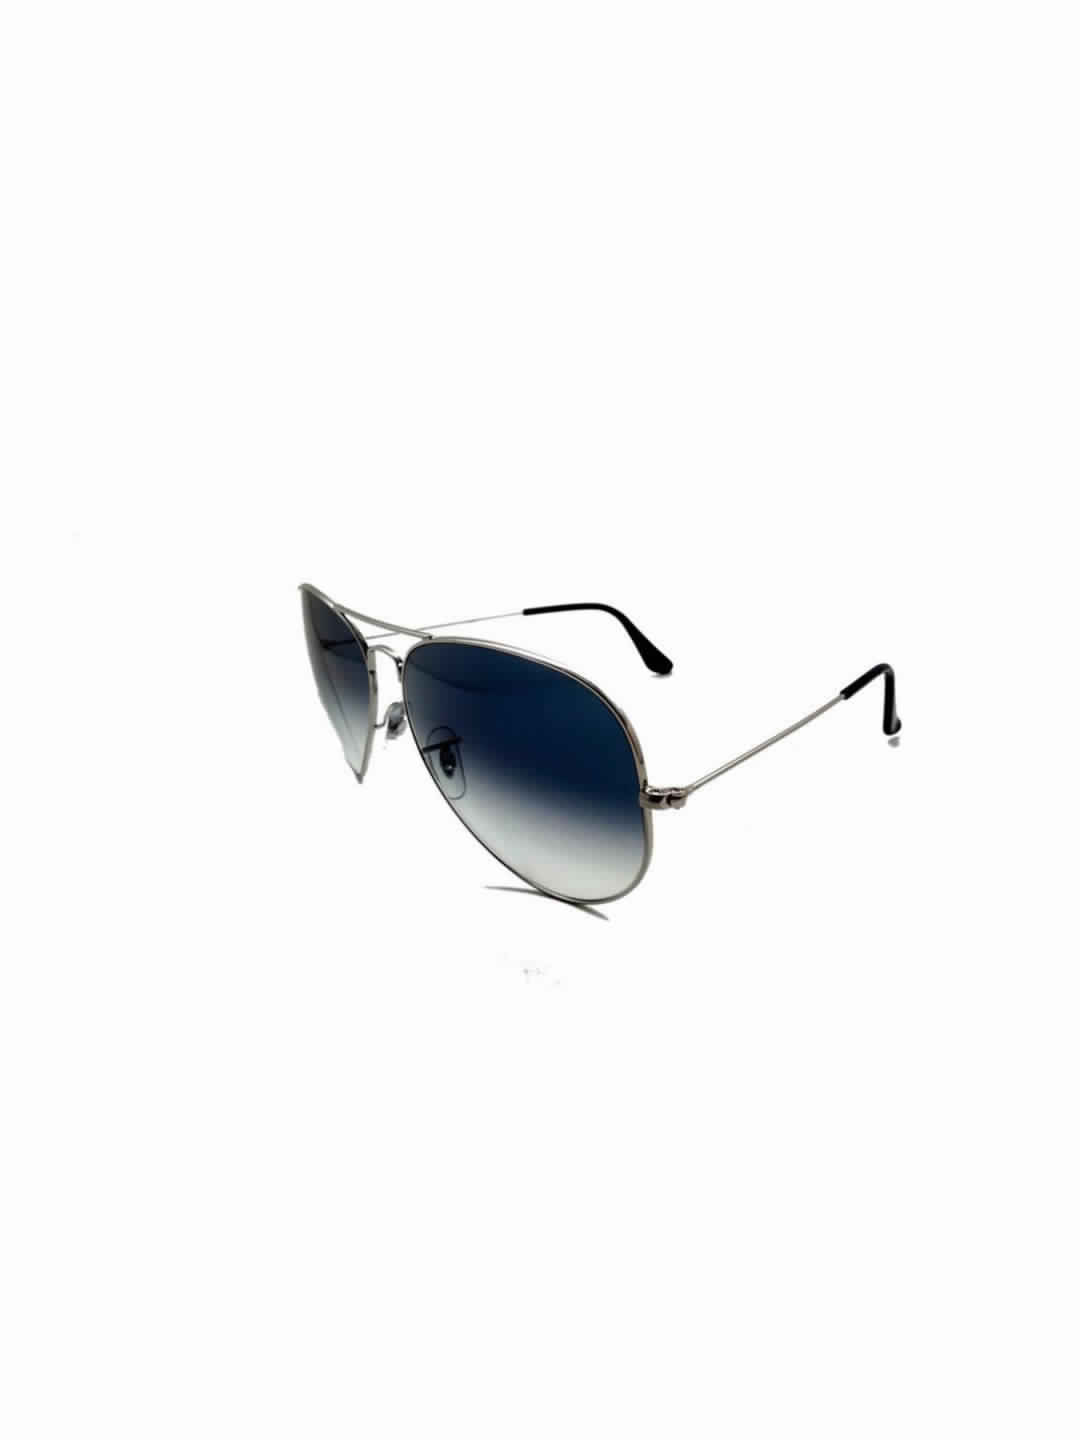 RayBan RB 3025 003/3F Aviator Silver Full Frame With Stainless Steel